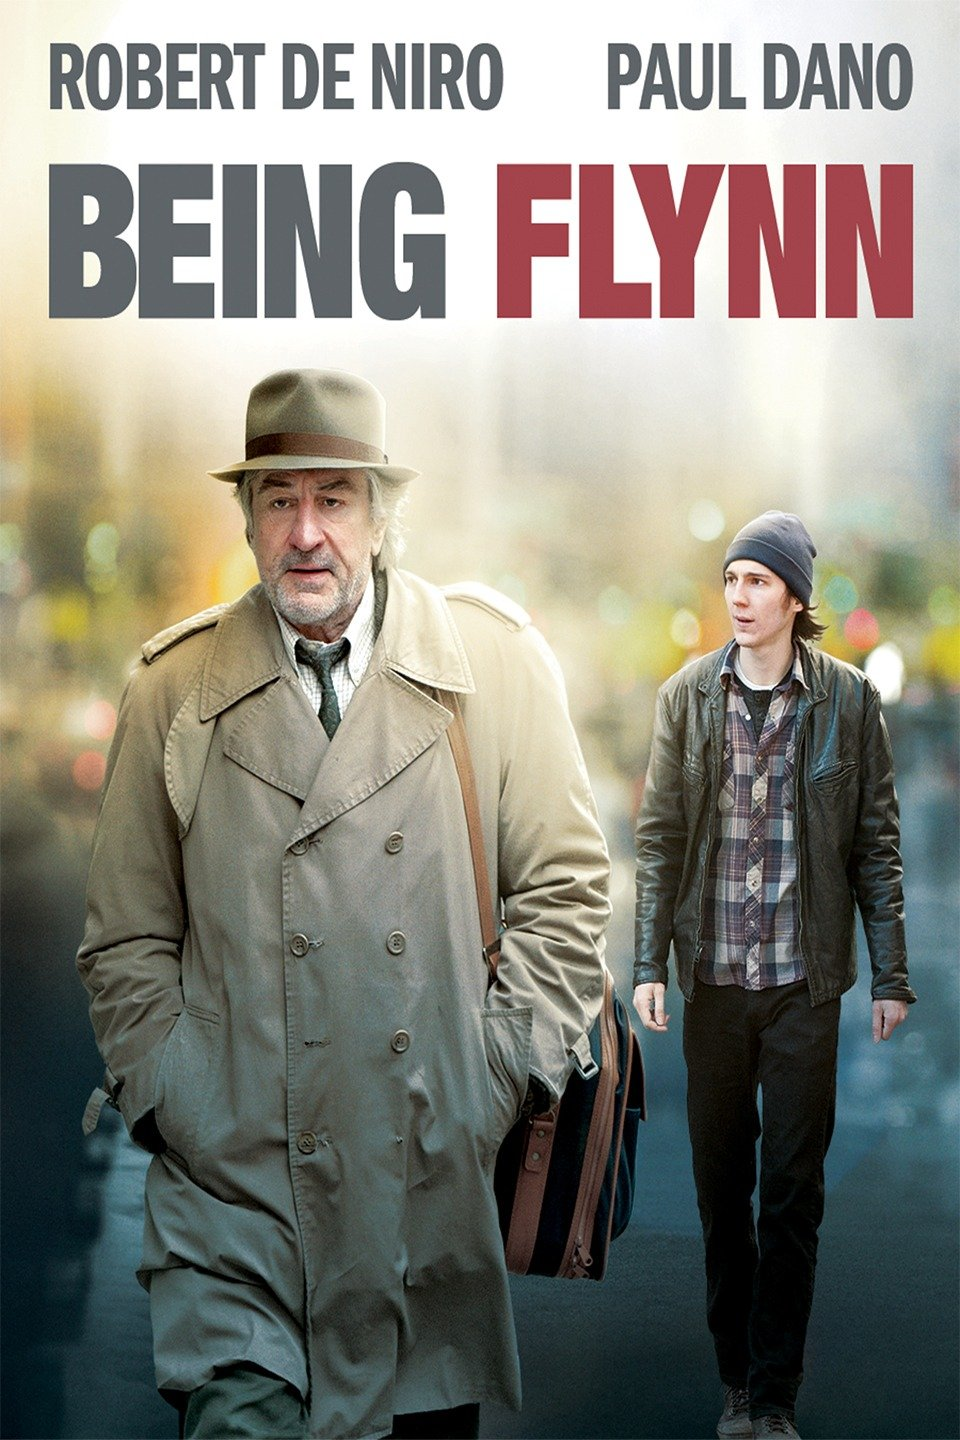 Being Flynn-Being Flynn